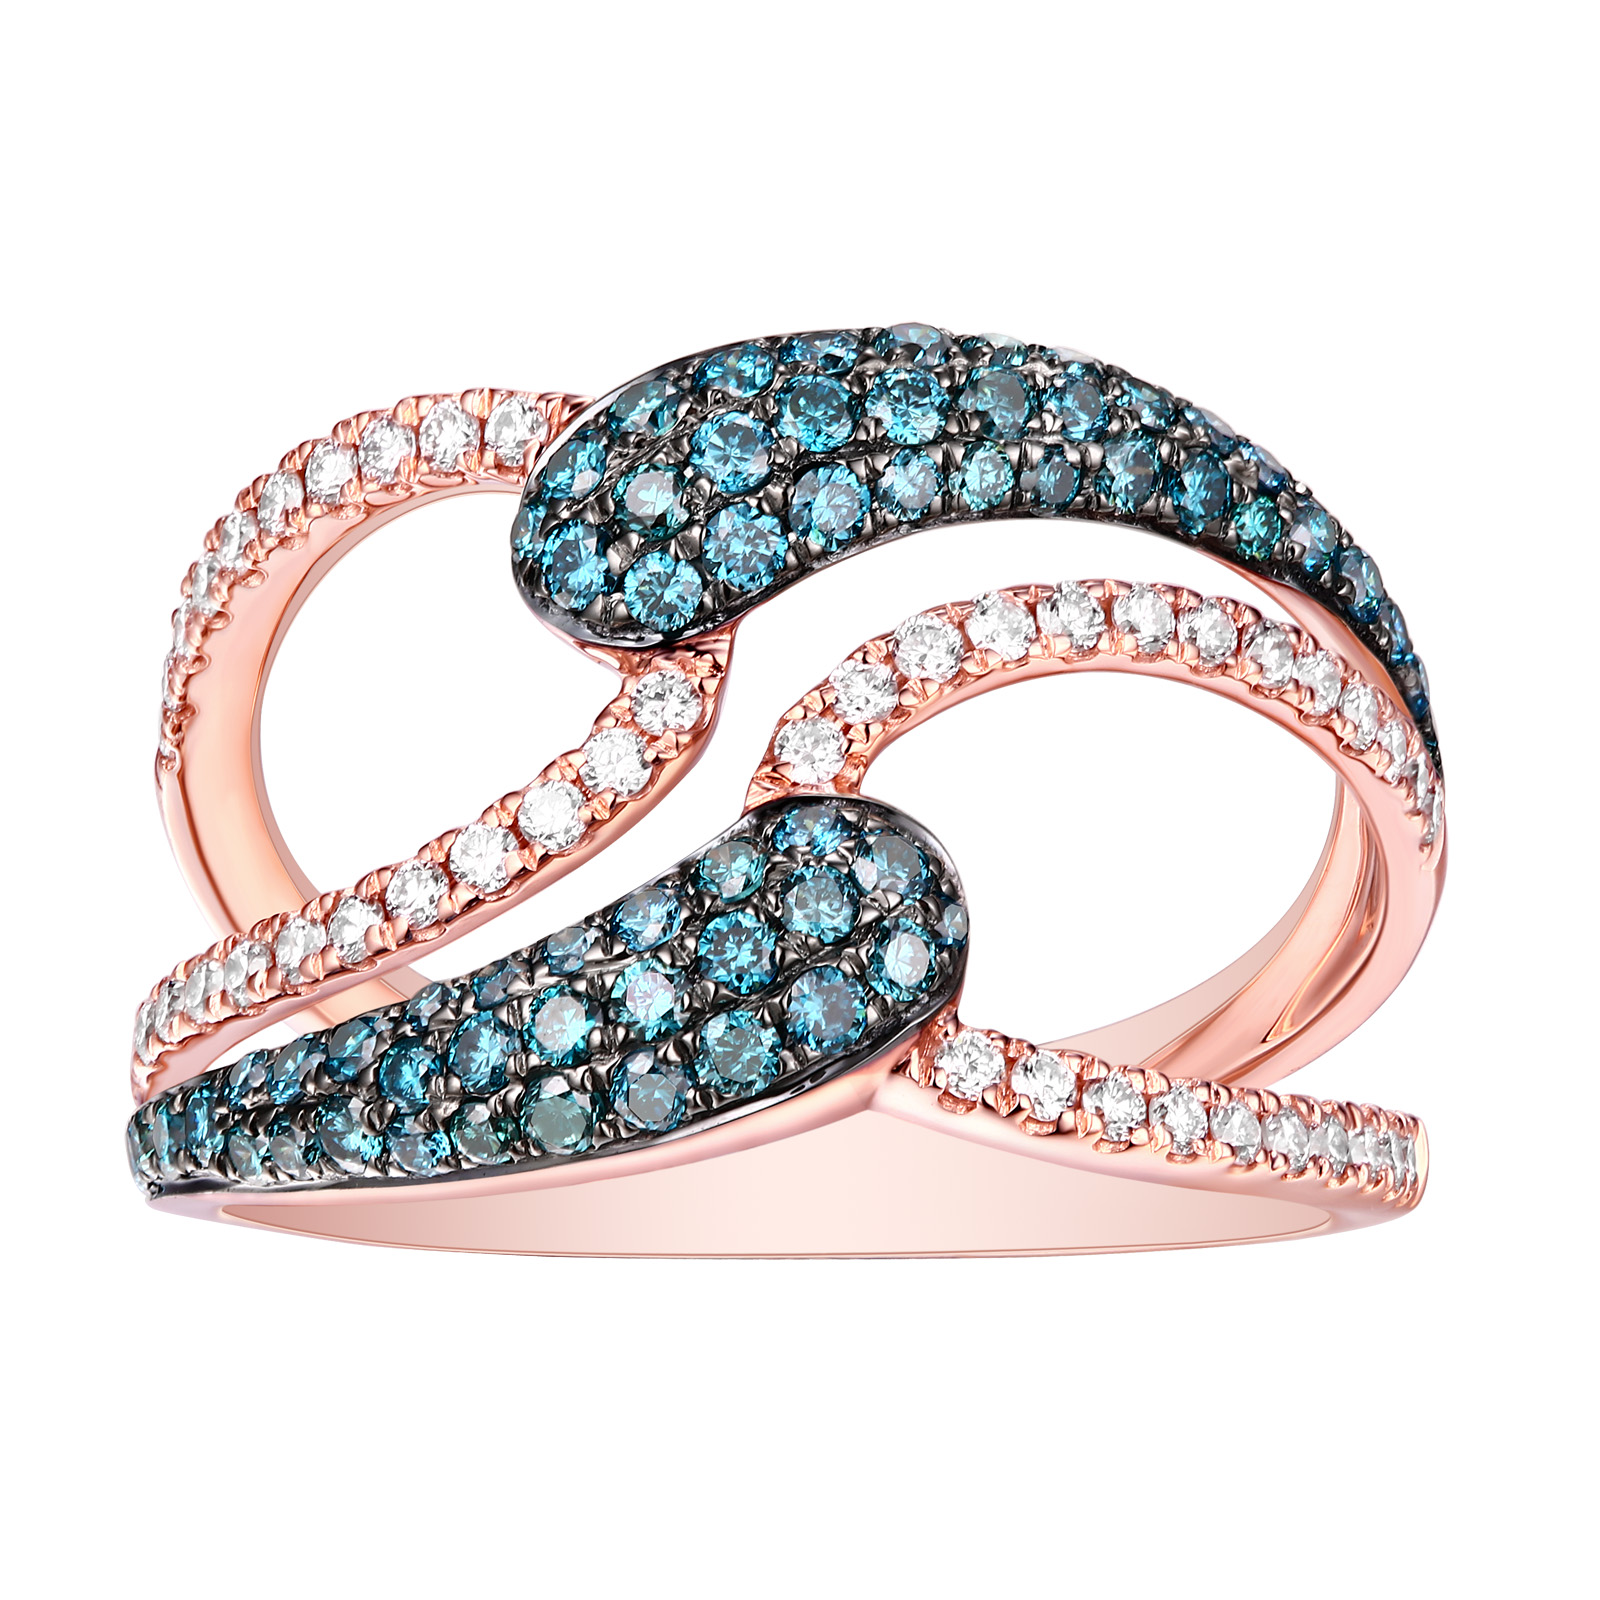 R26572ICE- 14K Rose Gold Diamond Ring, 0.88 TCW